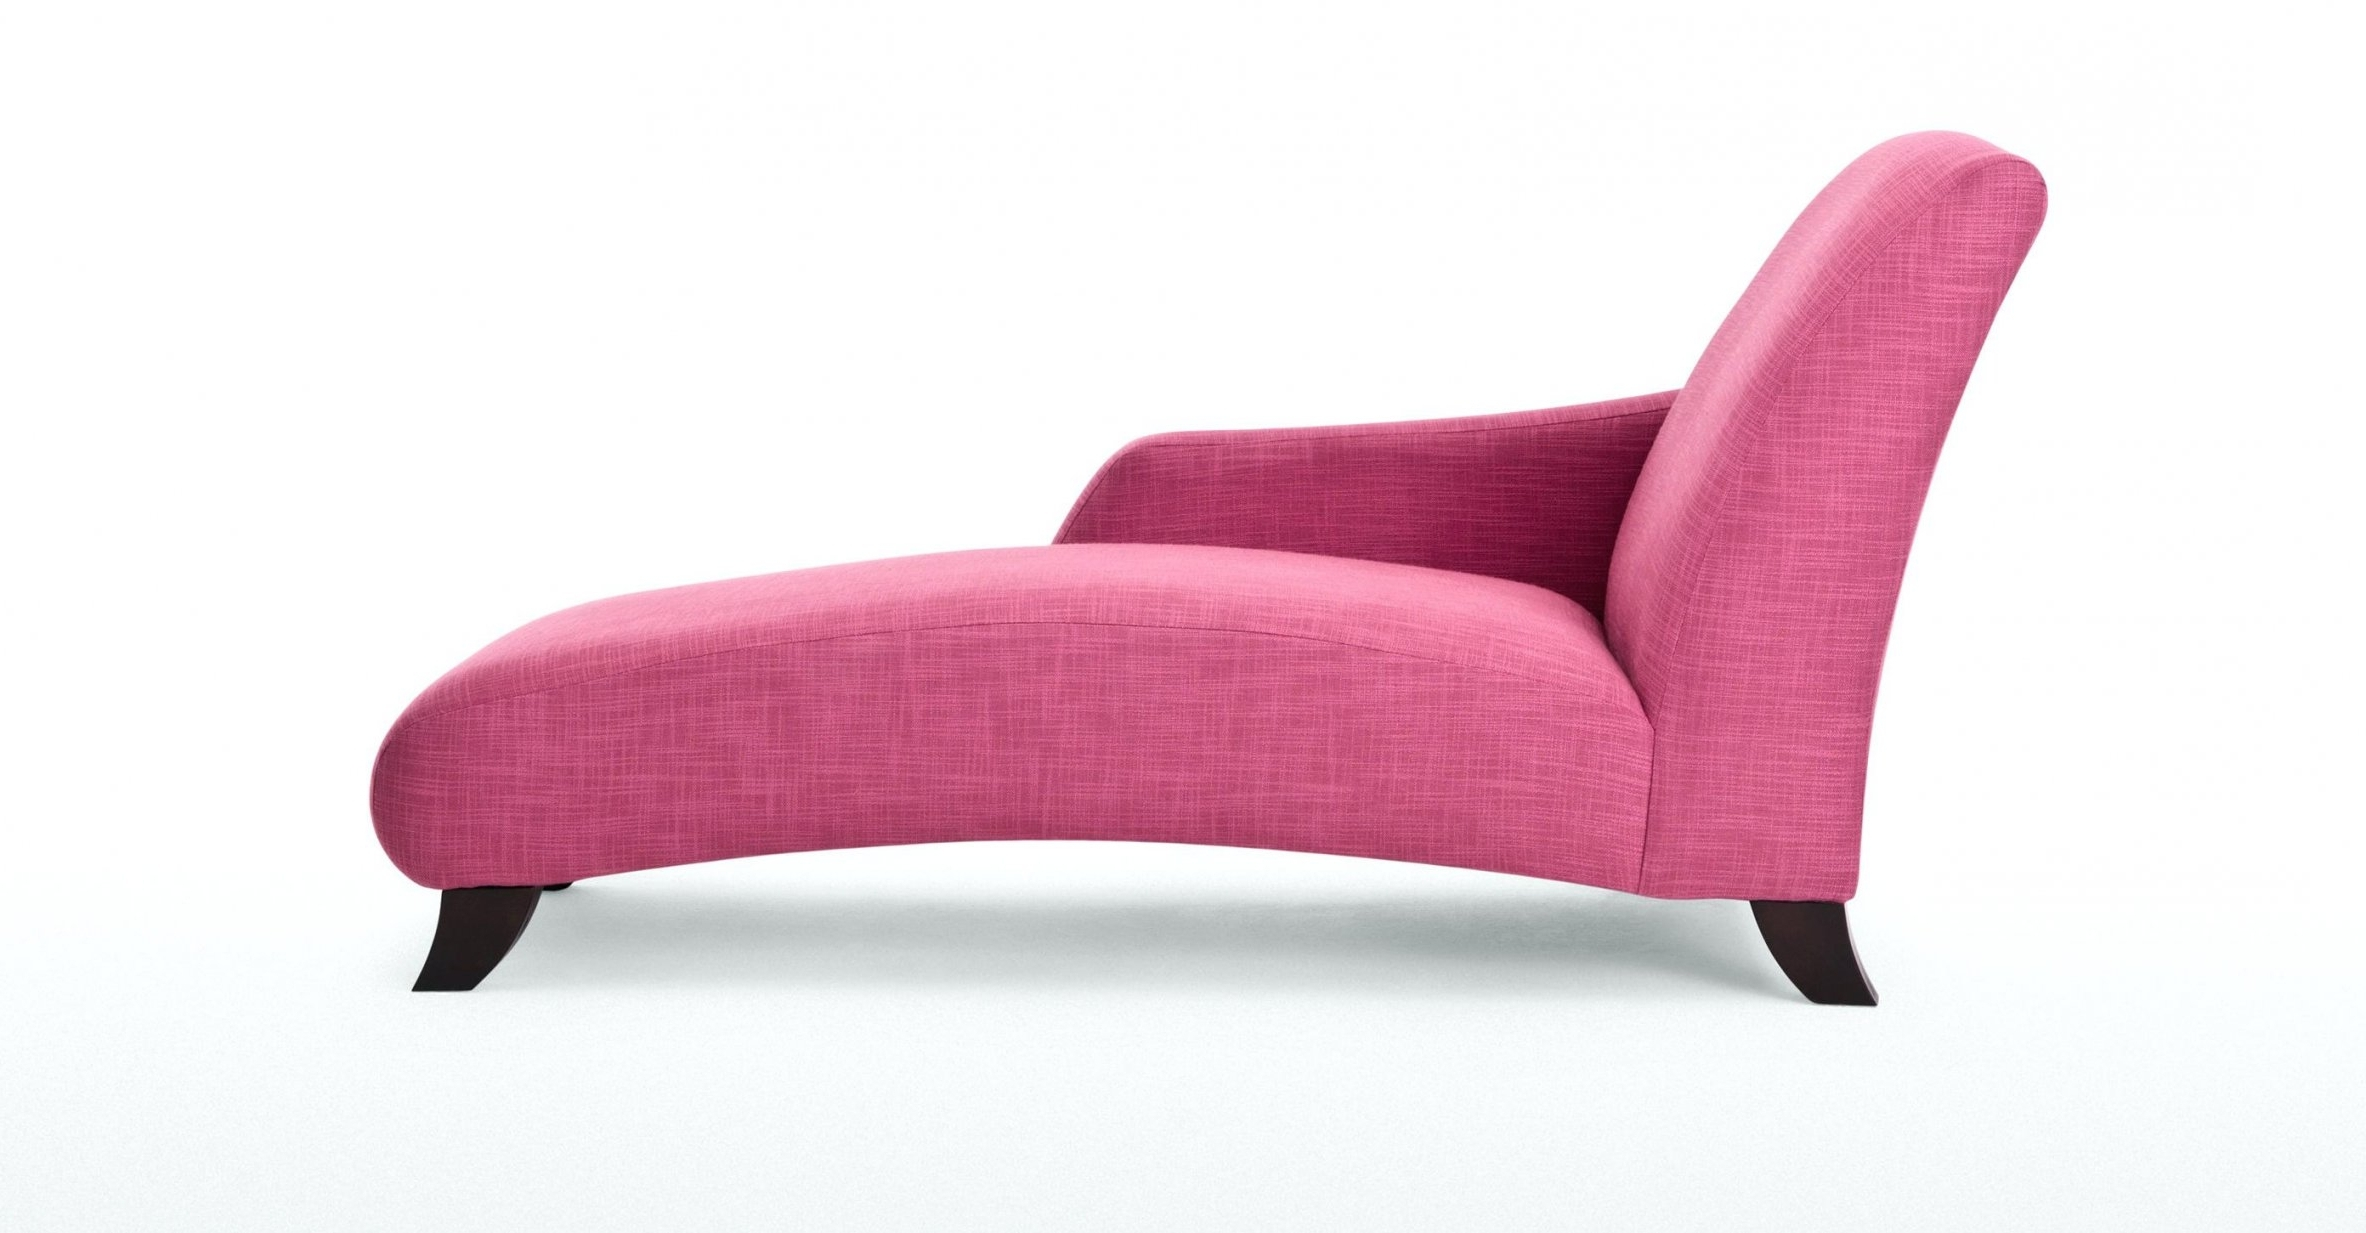 Pink Chaise Lounges With 2017 Pink Chaise Lounge Sofa (View 9 of 15)